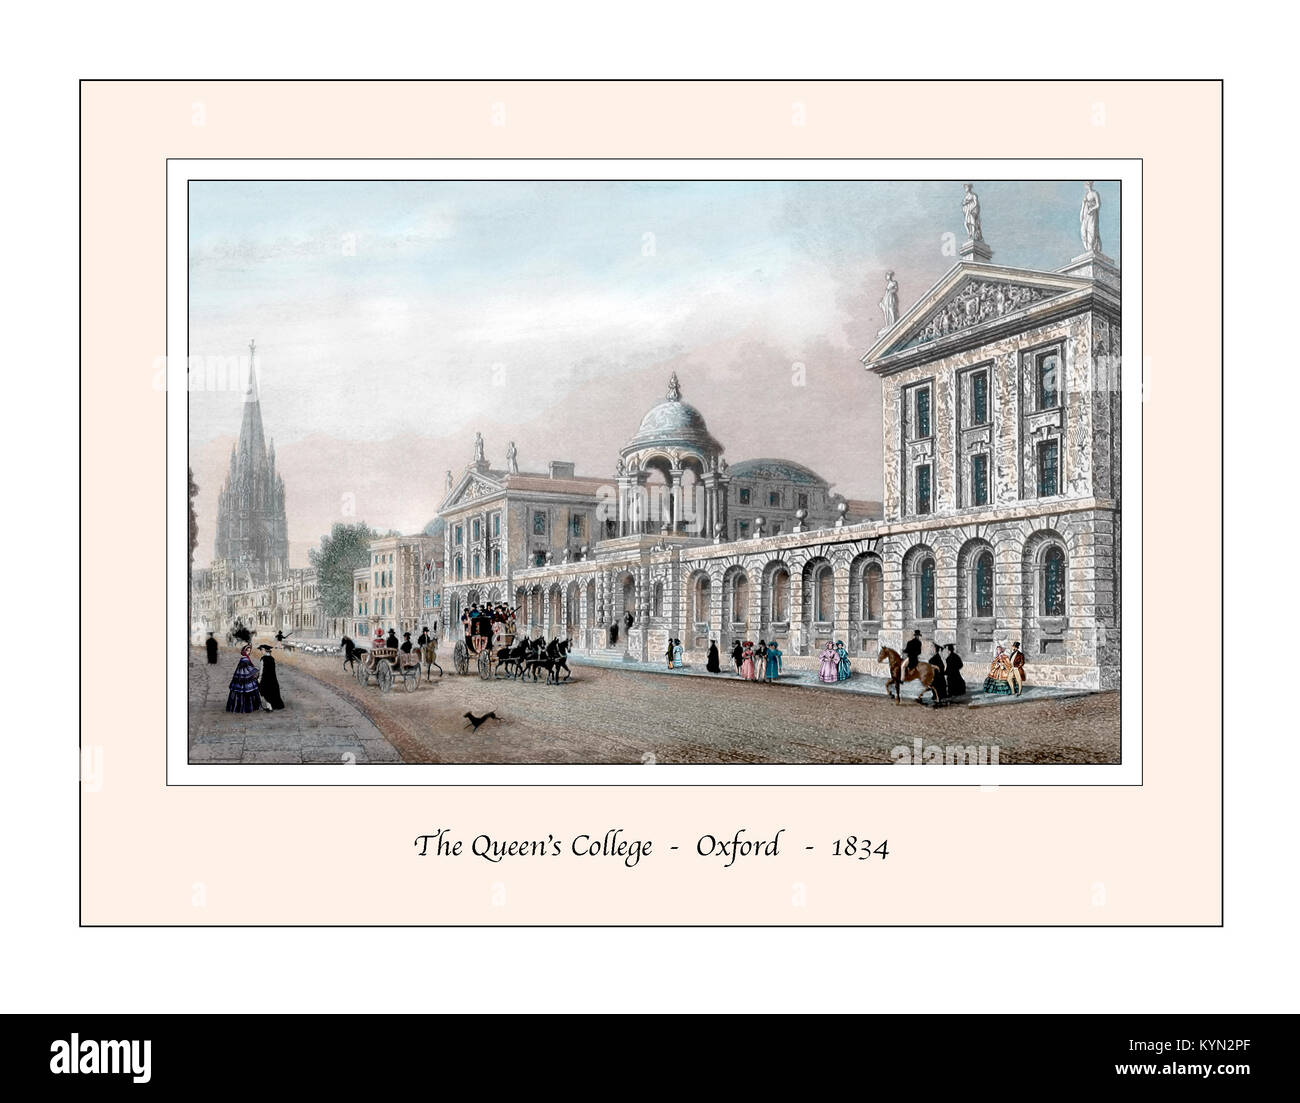 The Queen's College Oxford Original Design based on a 19th century Engraving - Stock Image